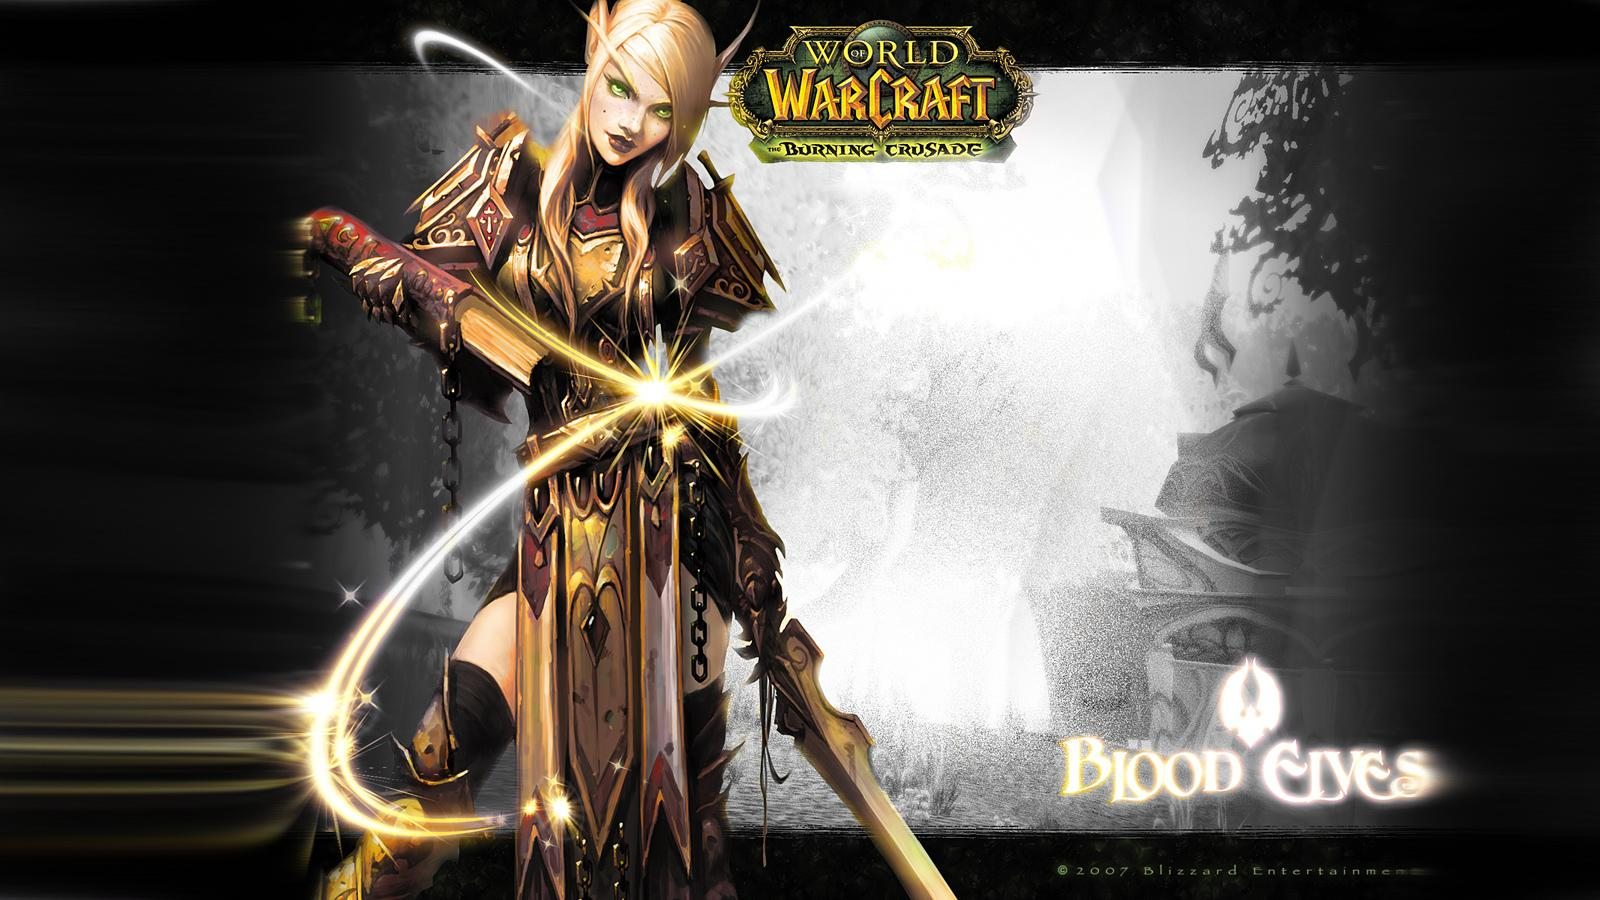 World Of Warcraft The Burning Crusade wallpapers HD quality